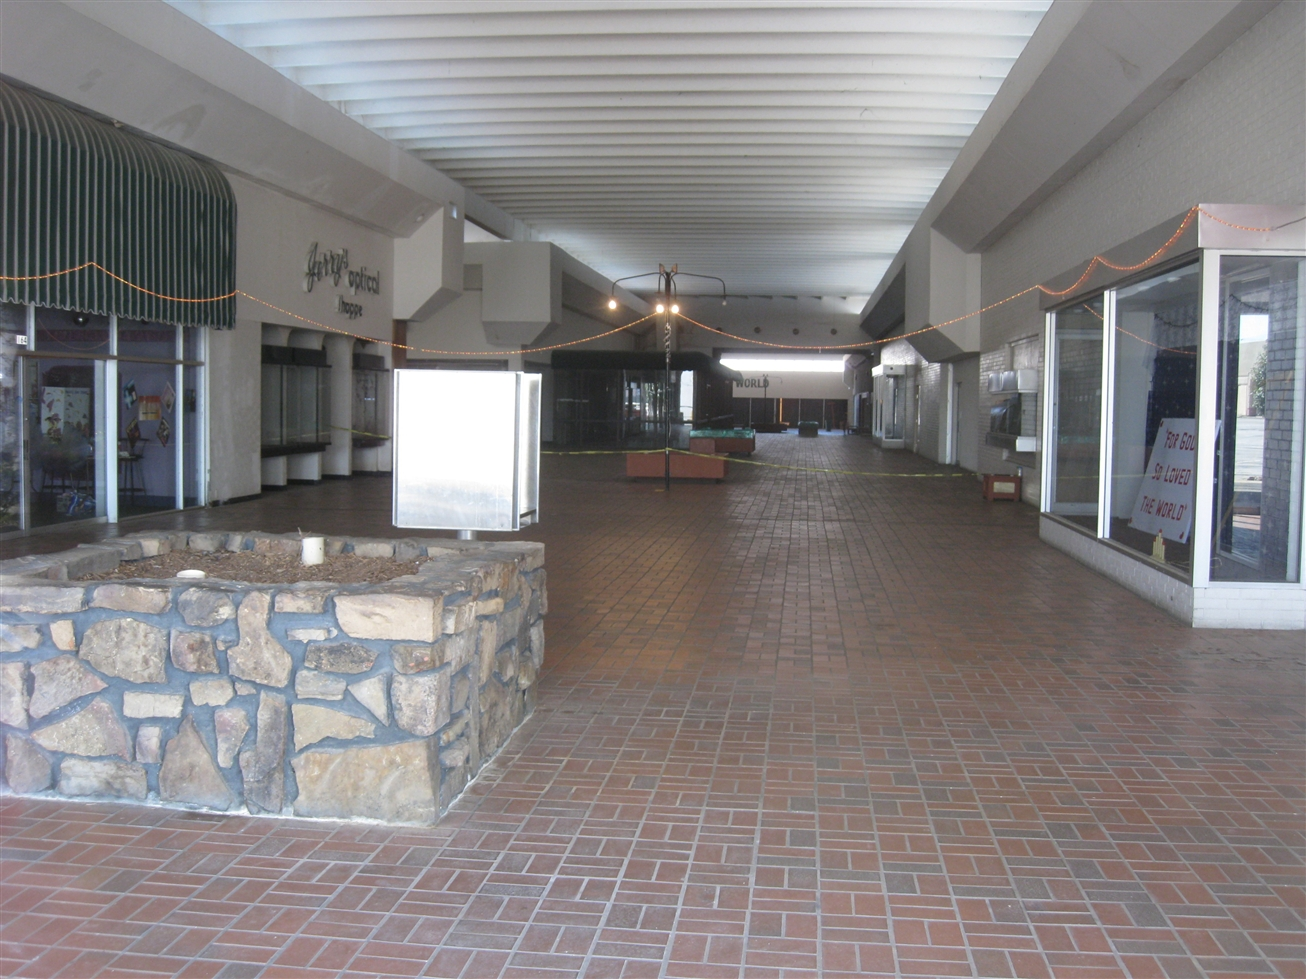 Phoenix Village Mall in Fort Smith, Arkansas